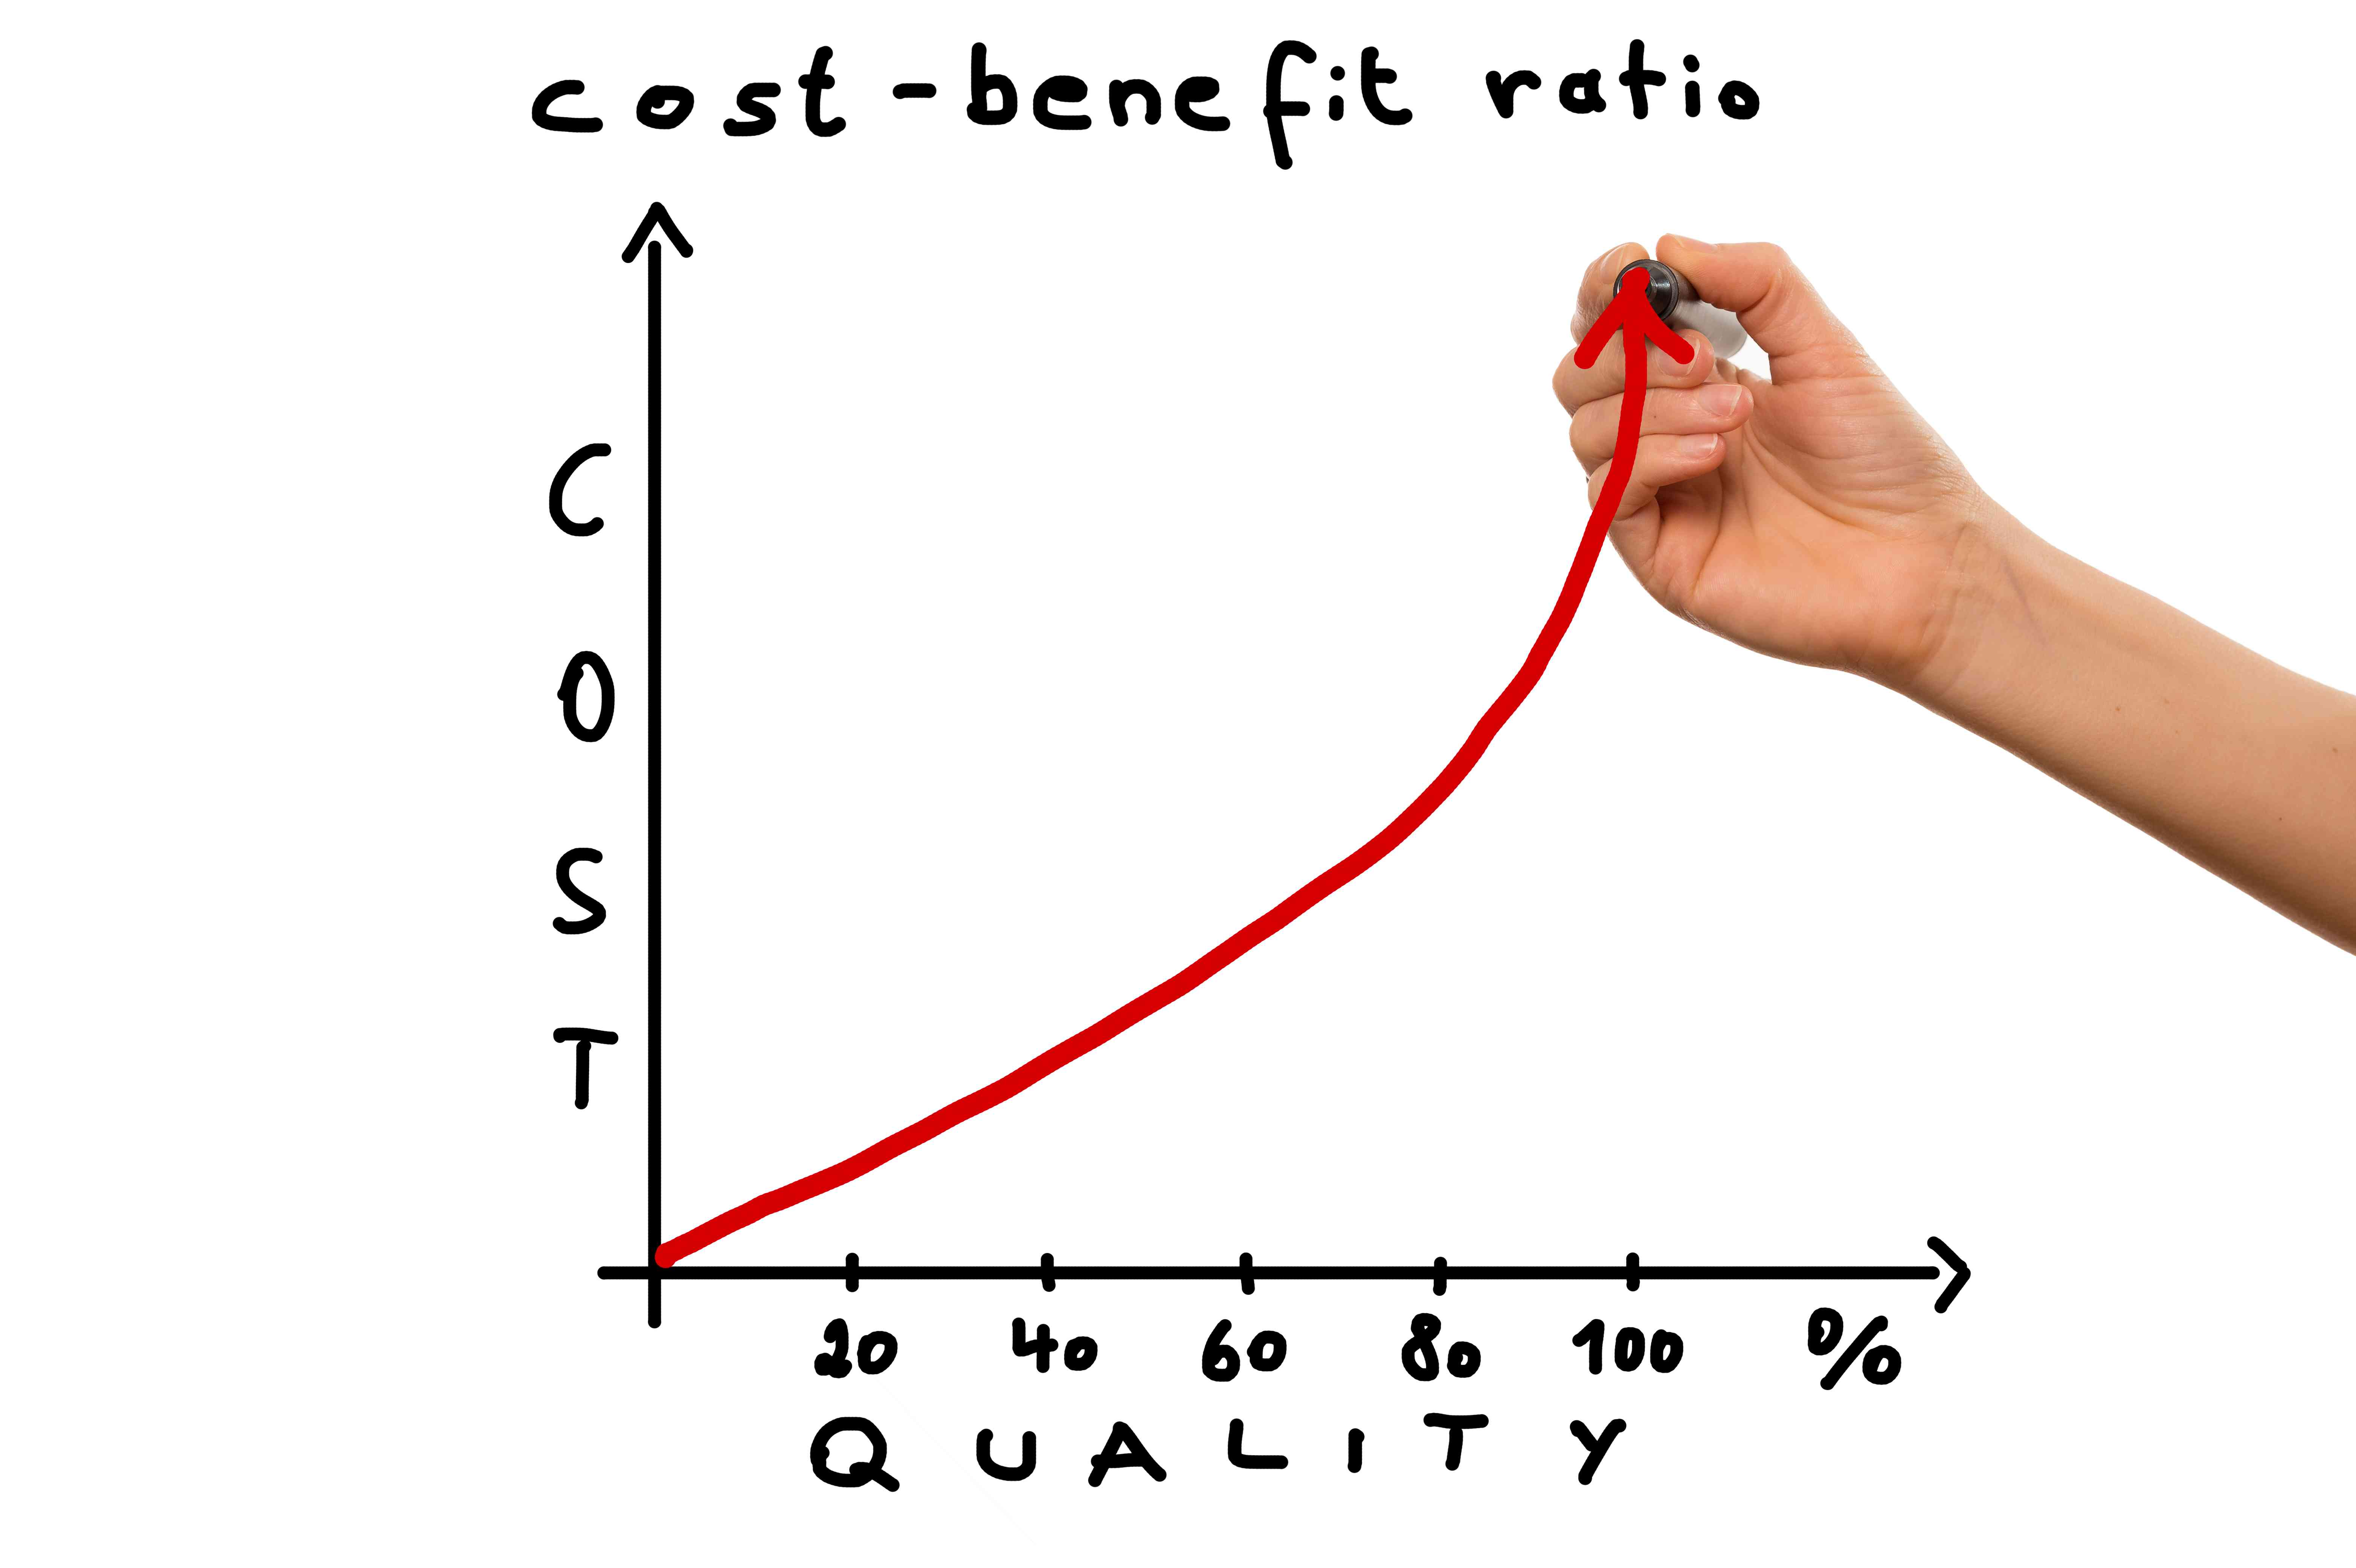 What Are the Limitations of Using Ratio Analysis?